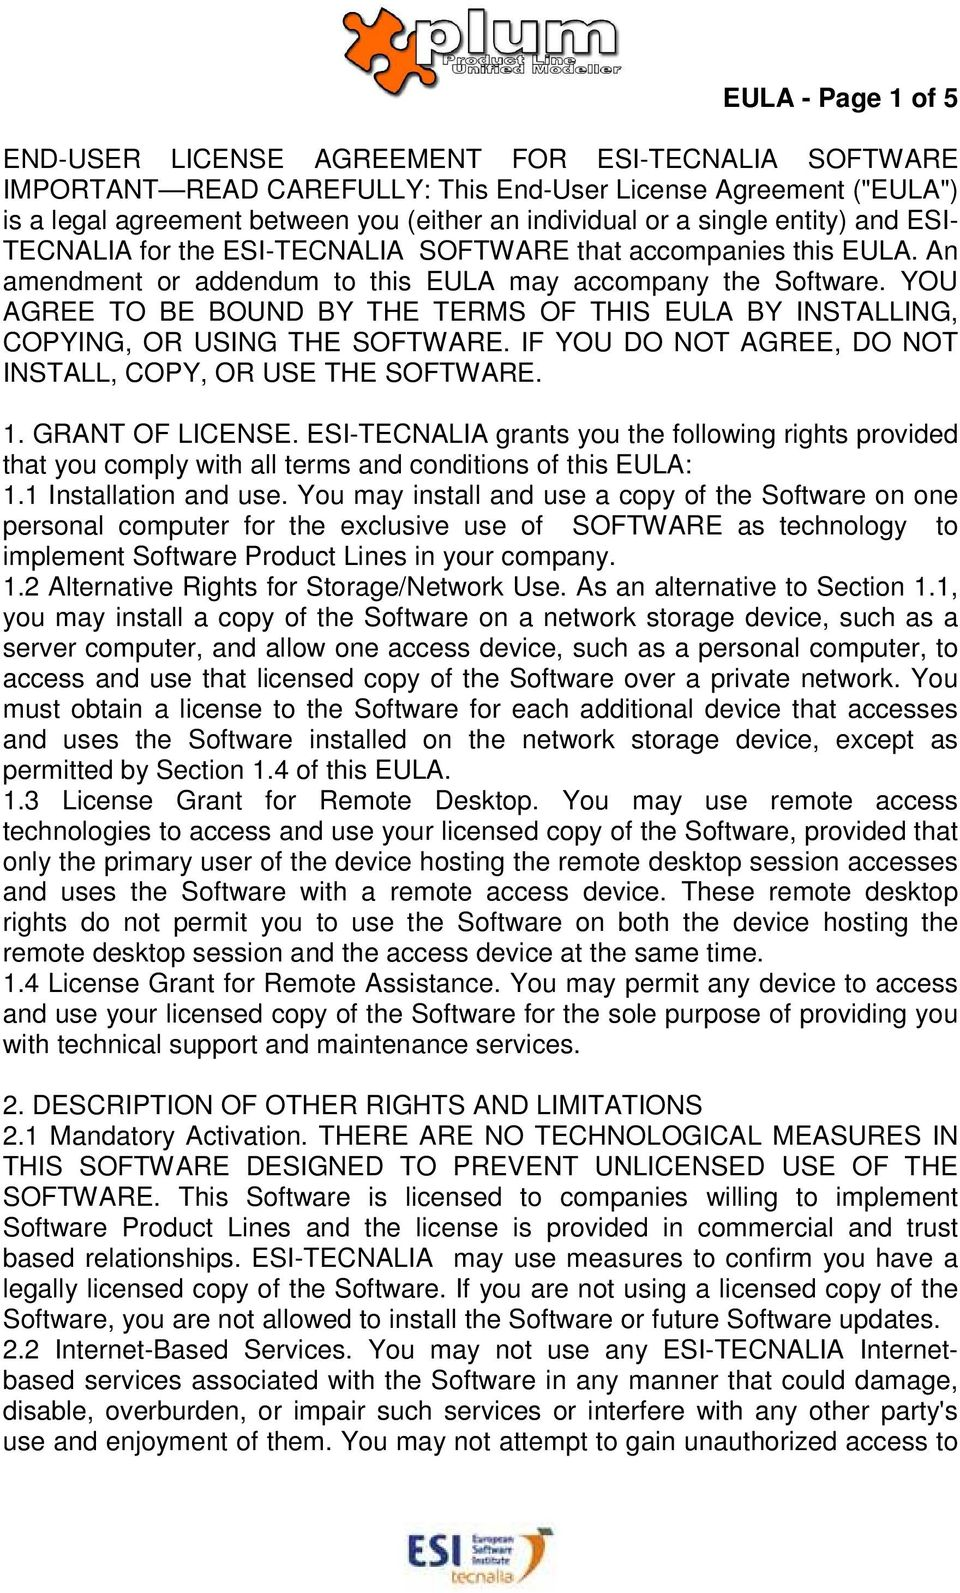 YOU AGREE TO BE BOUND BY THE TERMS OF THIS EULA BY INSTALLING, COPYING, OR USING THE SOFTWARE. IF YOU DO NOT AGREE, DO NOT INSTALL, COPY, OR USE THE SOFTWARE. 1. GRANT OF LICENSE.